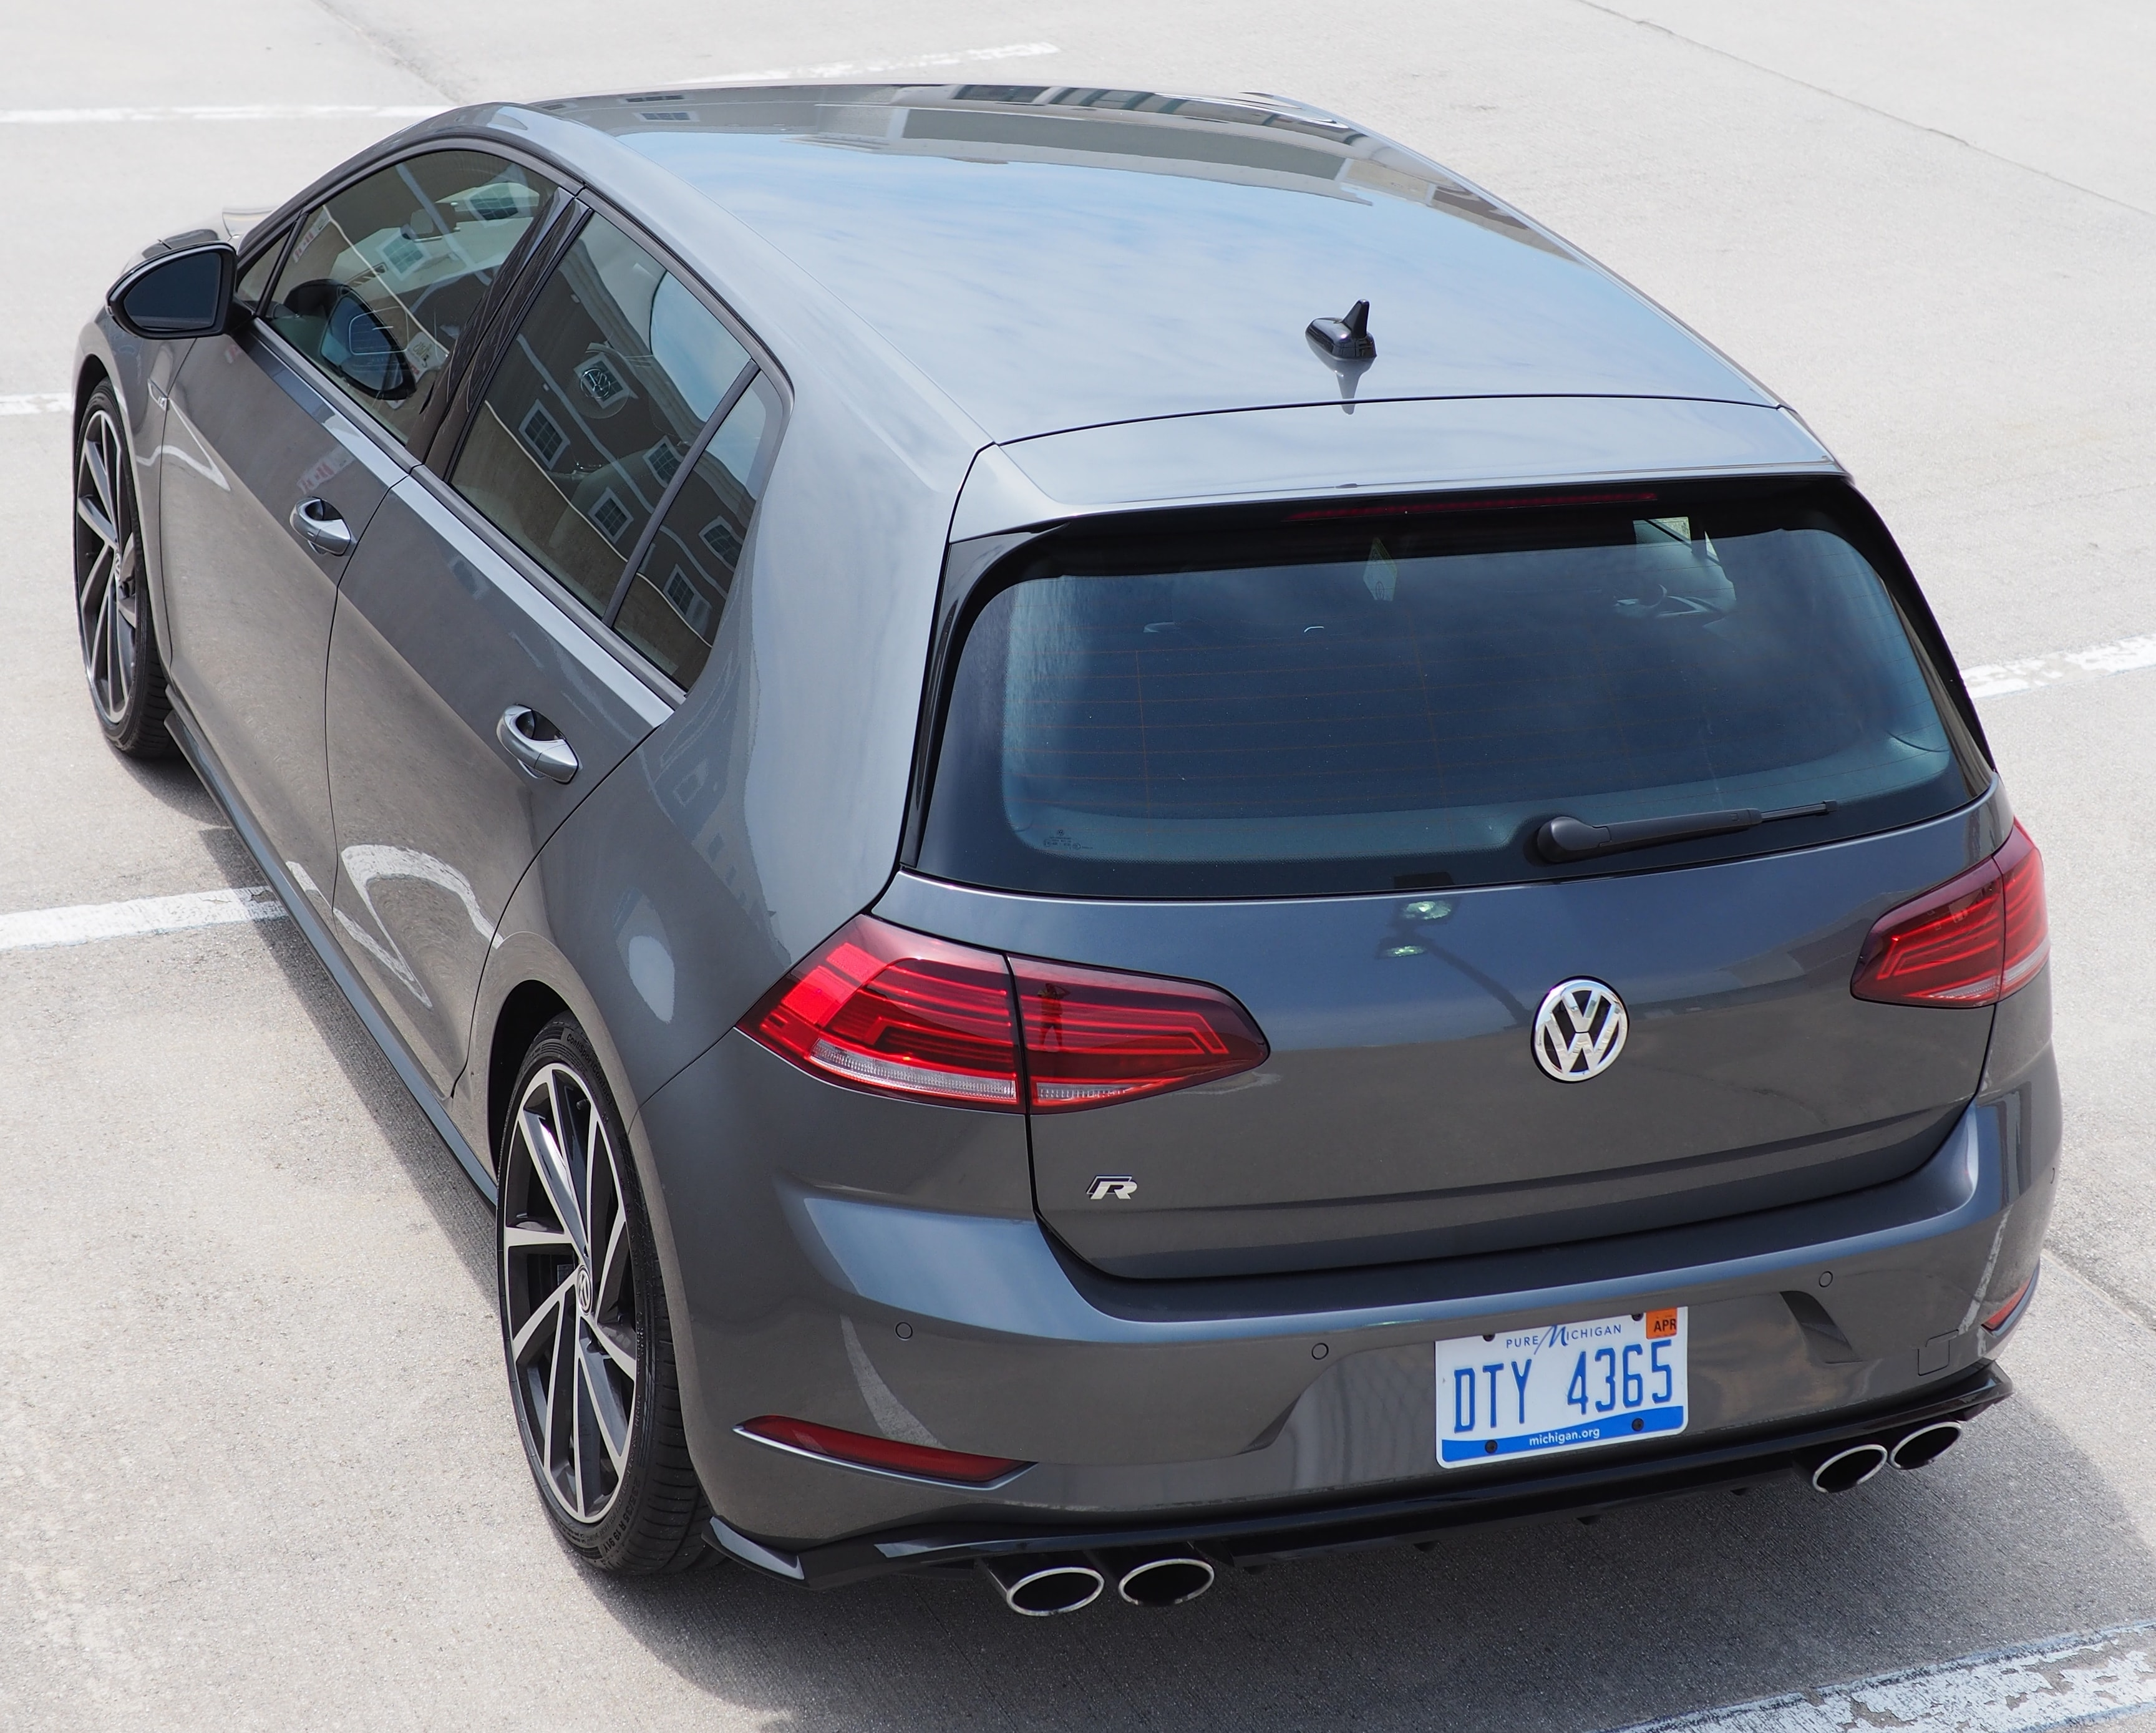 Rear of the Golf R